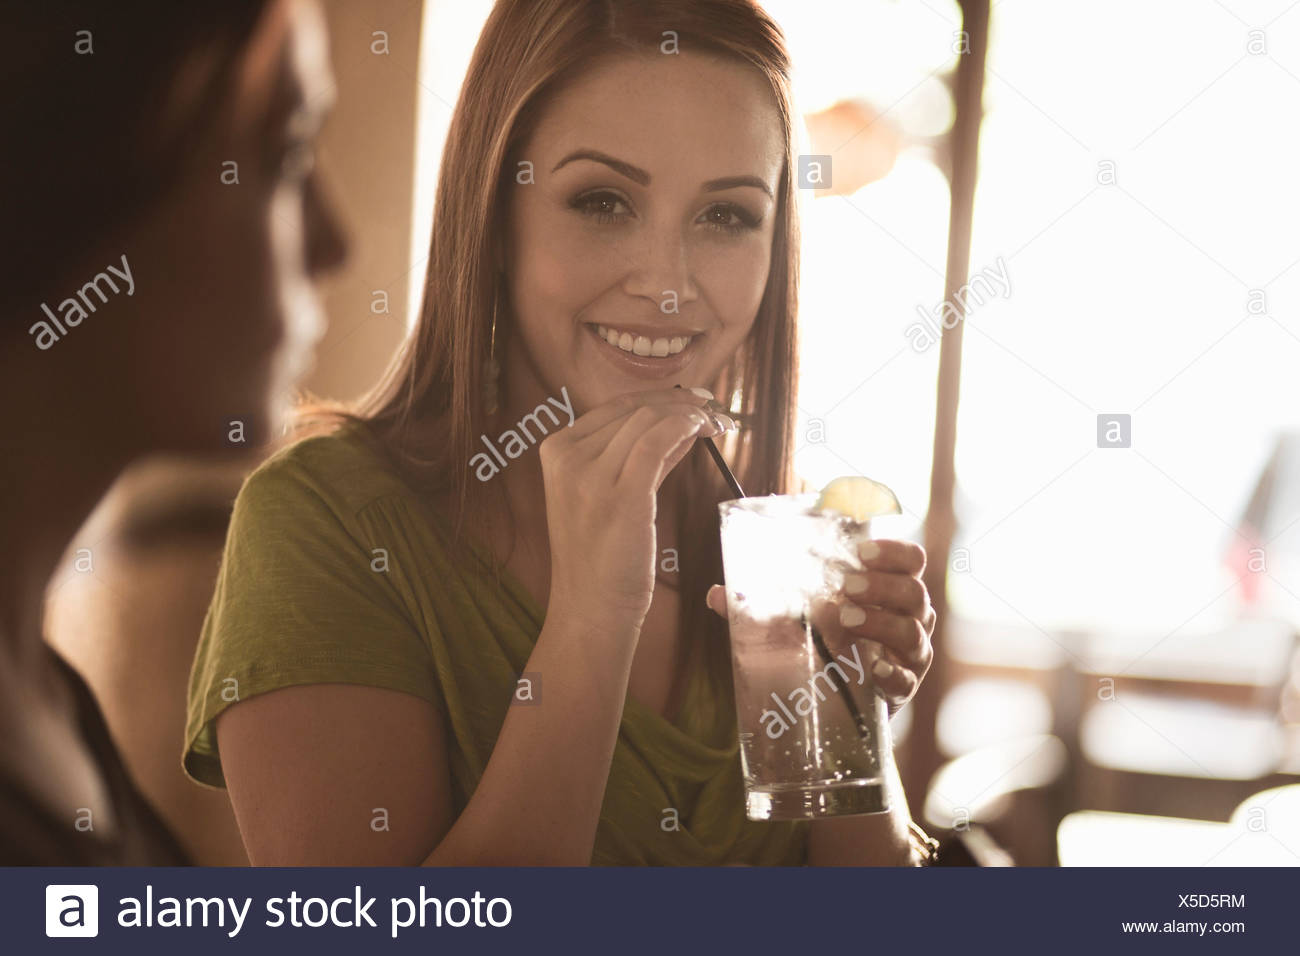 Female colleagues enjoying drinks in a wine bar - Stock Image